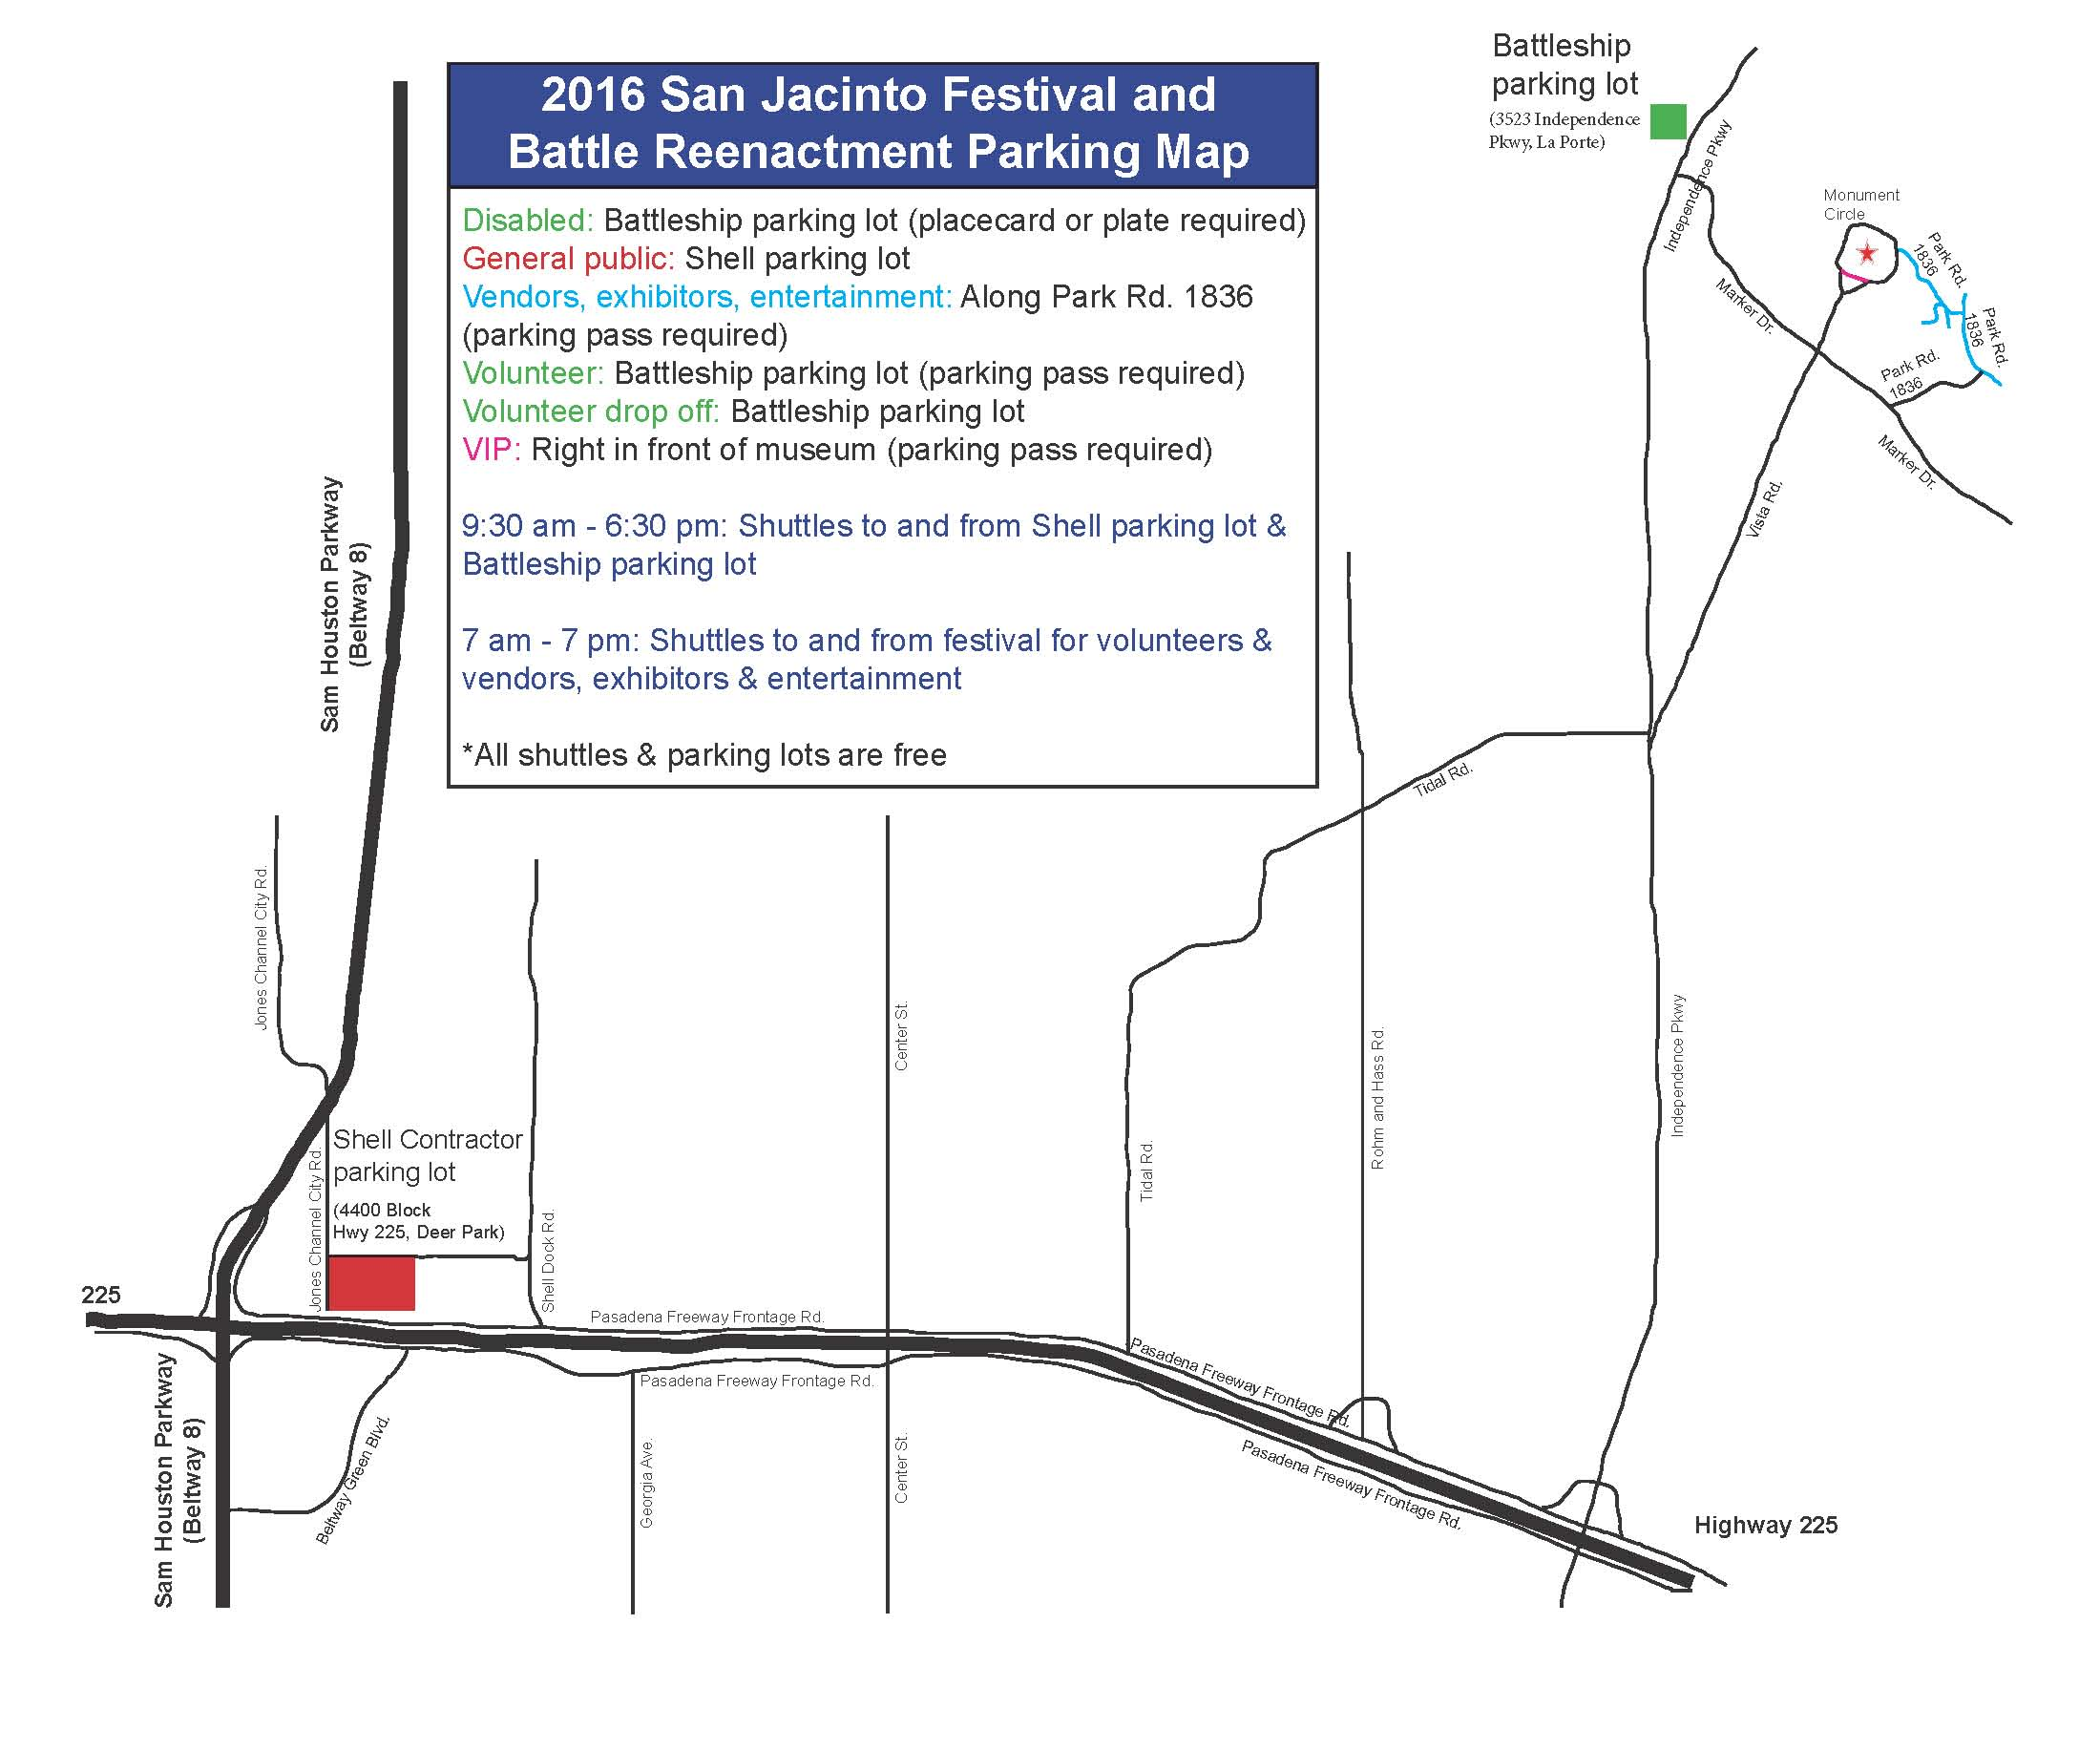 2016 san jacinto day festival and battle reenactment laptop diagram map showing location of parking for the 2016 san jacinto day festival and battle reenactment